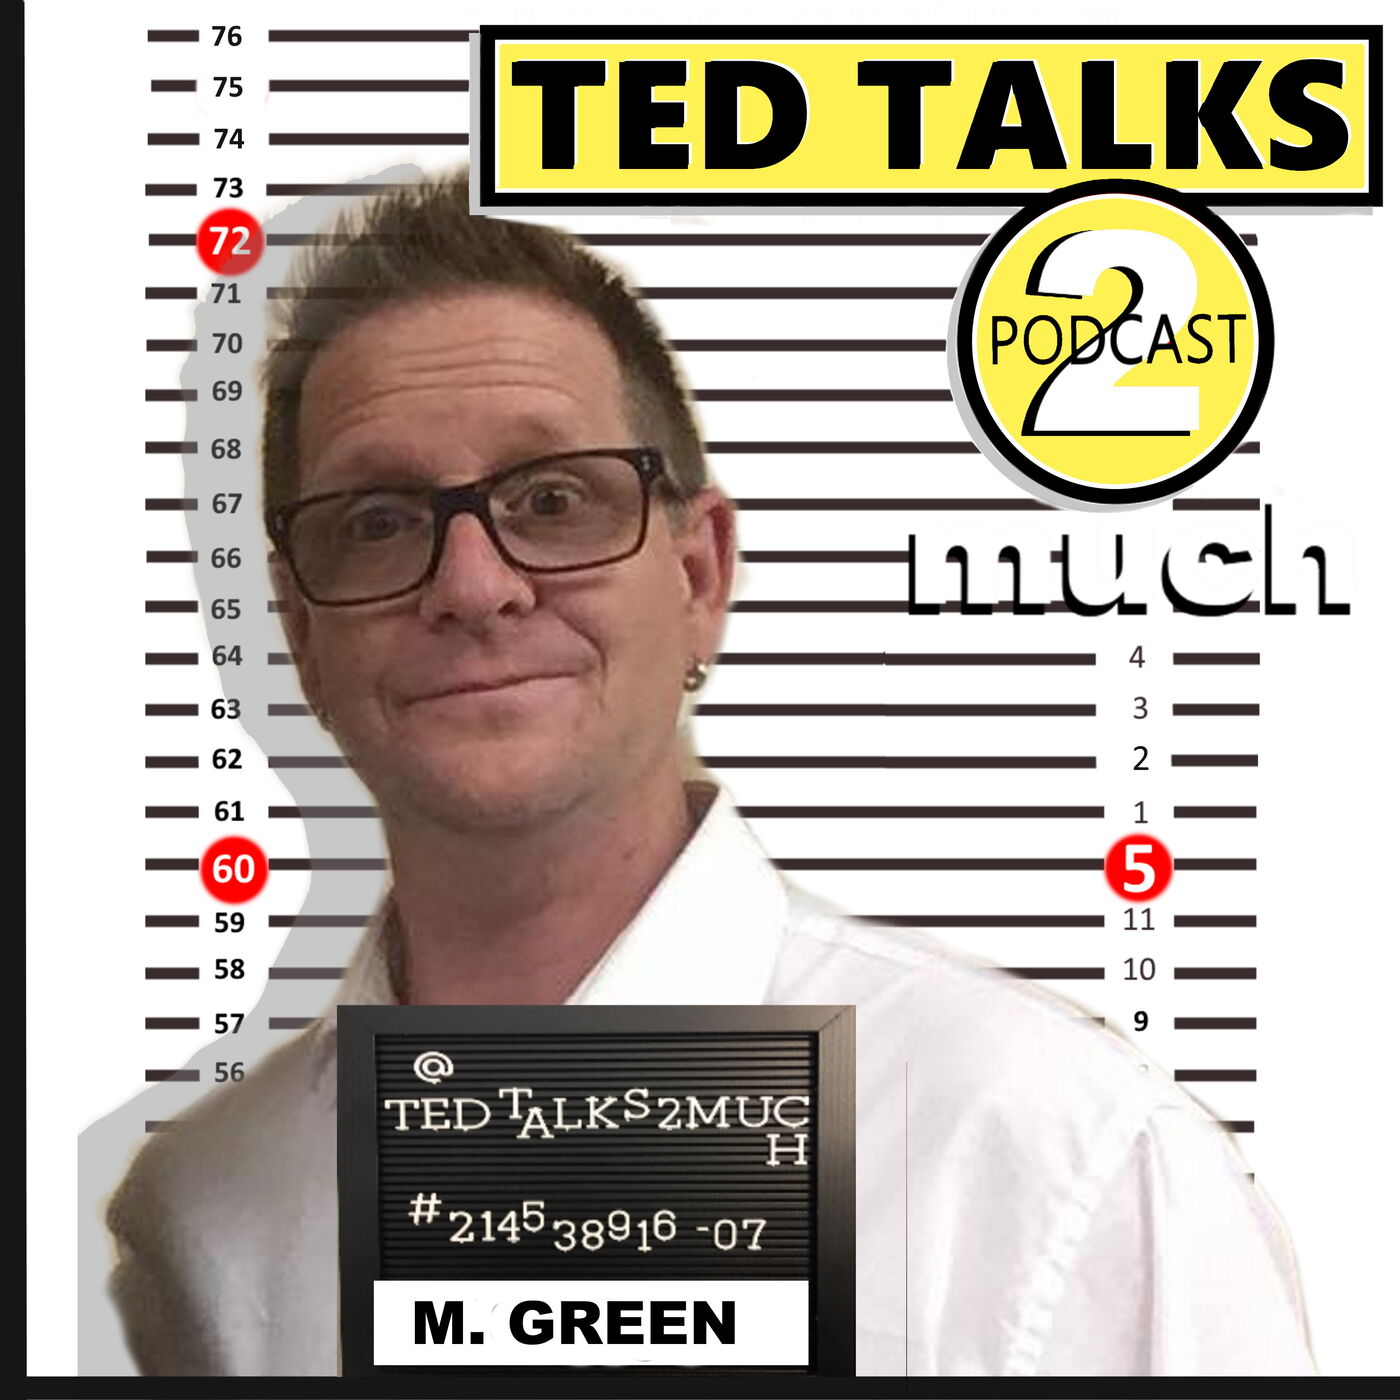 TED TALKS 2 Mike Green... about 32 years of Stand Up, Famous Comedians, Fishing and One Night Stans